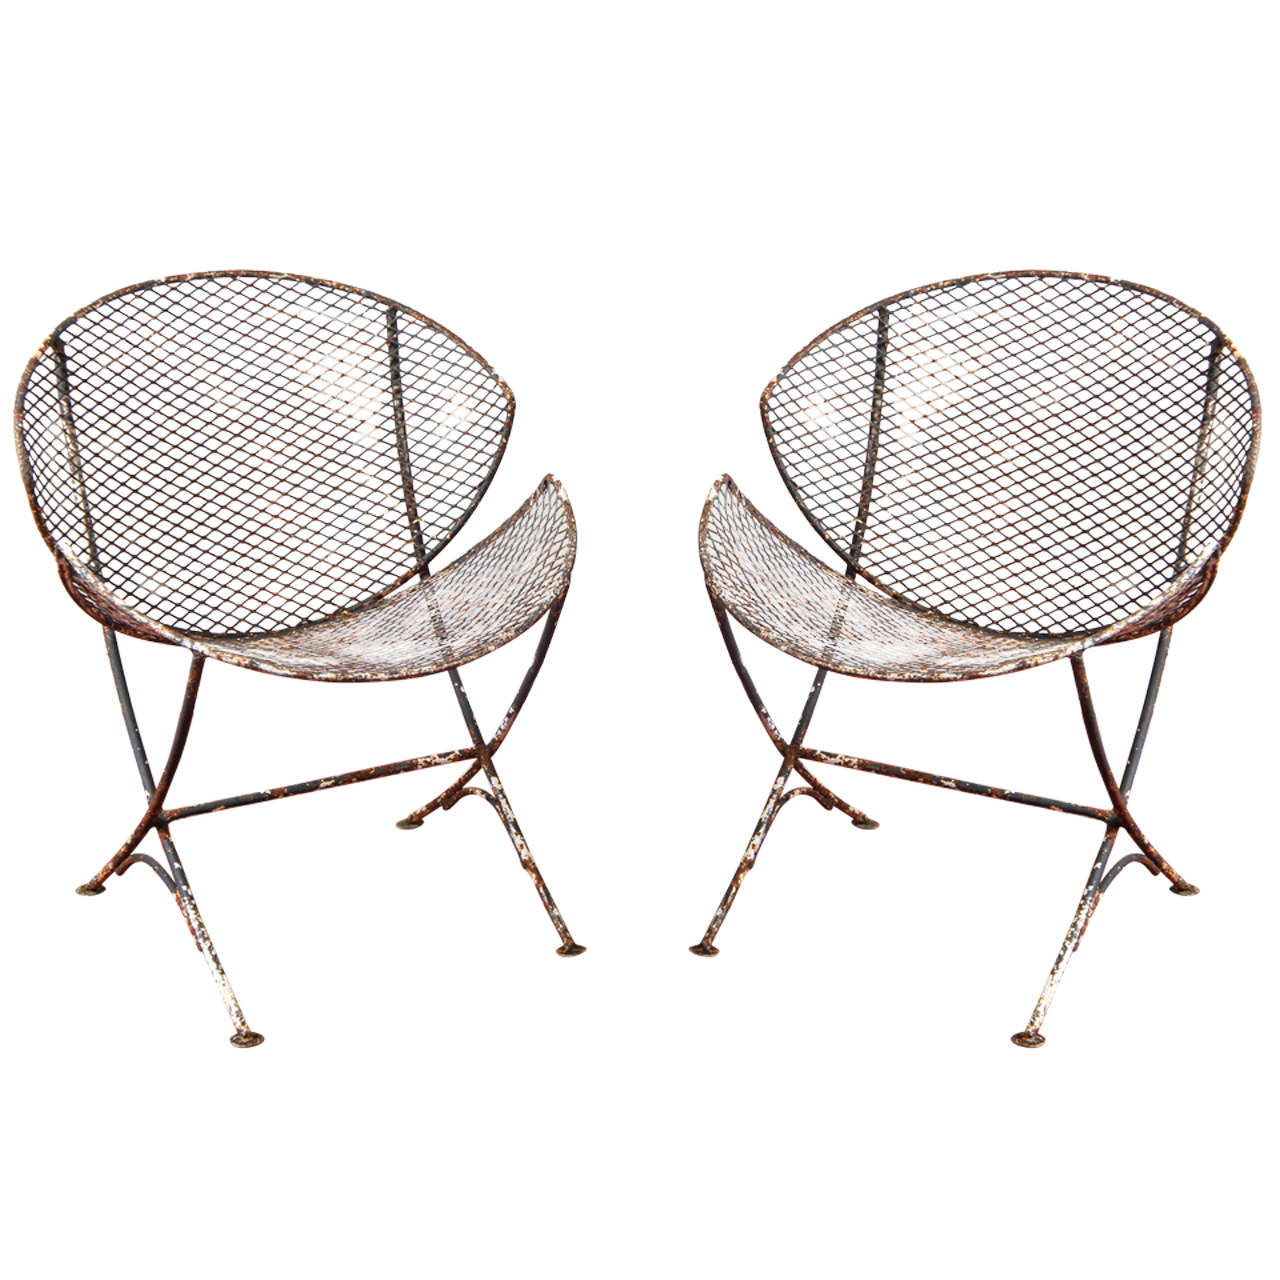 Pair of mesh metal saucer outdoor chairs at 1stdibs for Mesh patio chairs